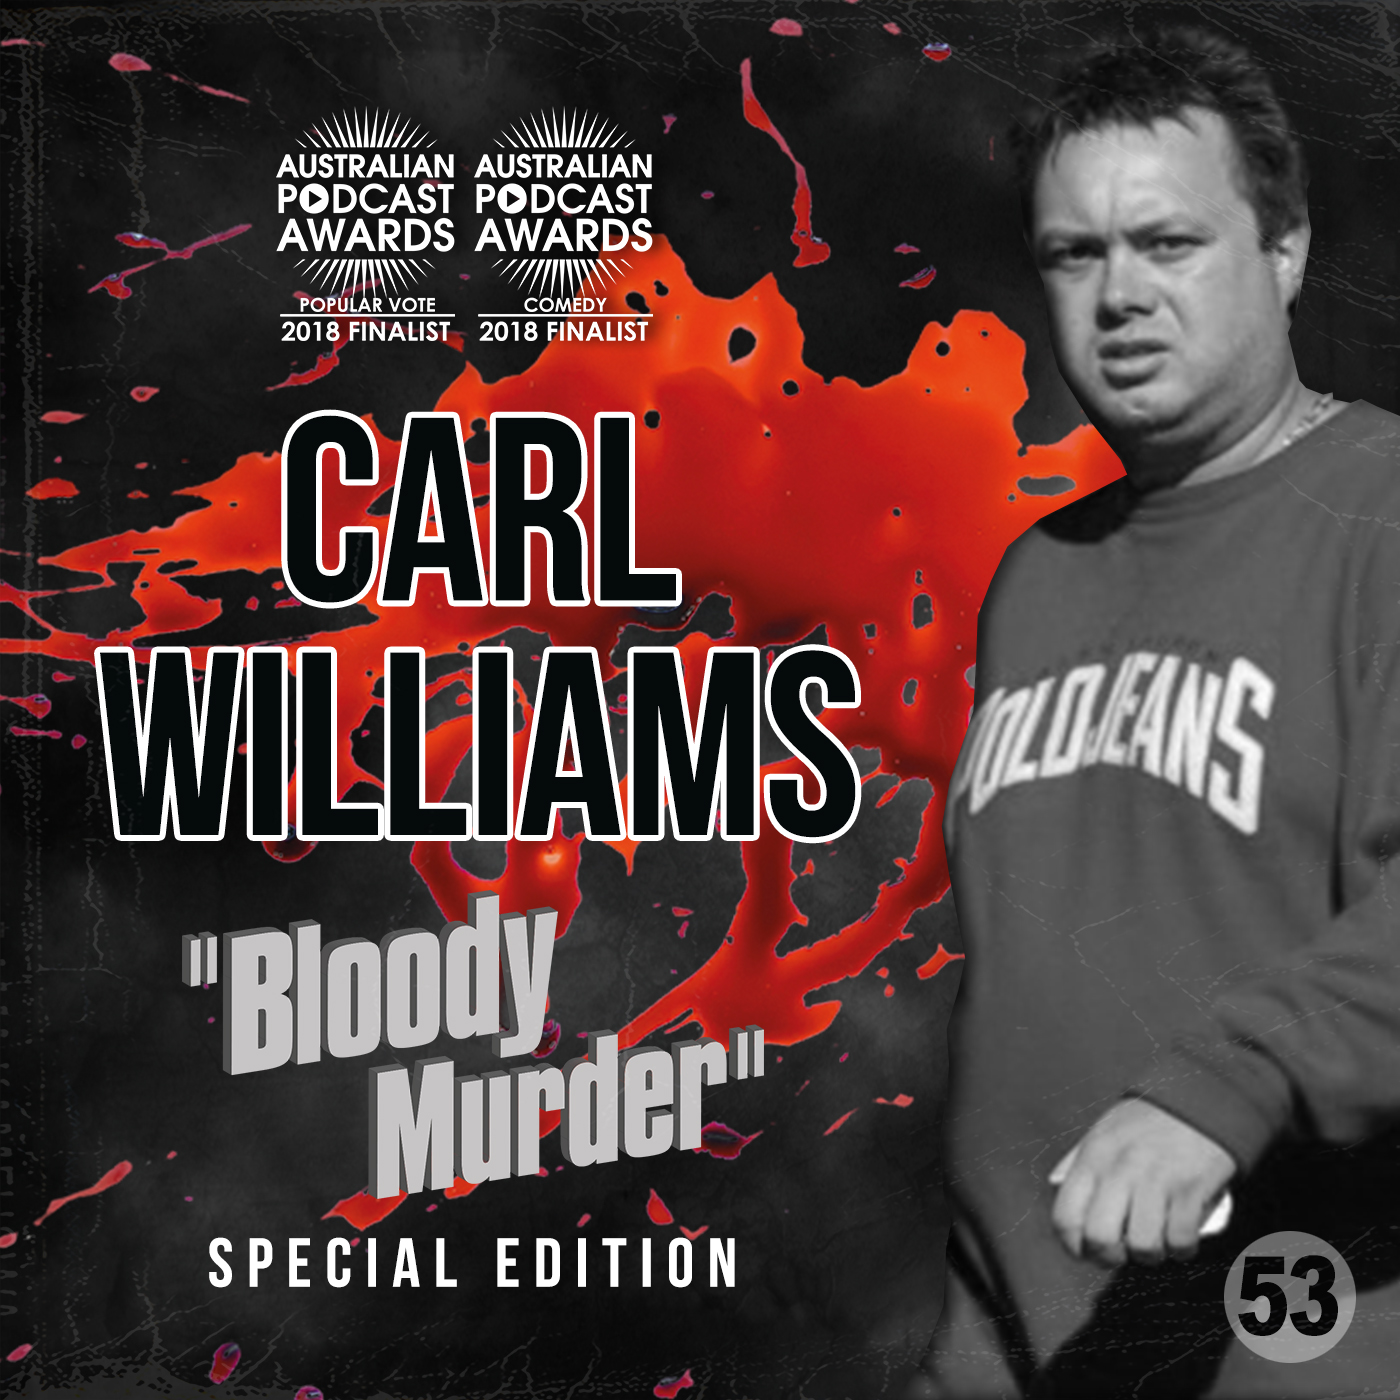 53 - Carl Williams Special Edition